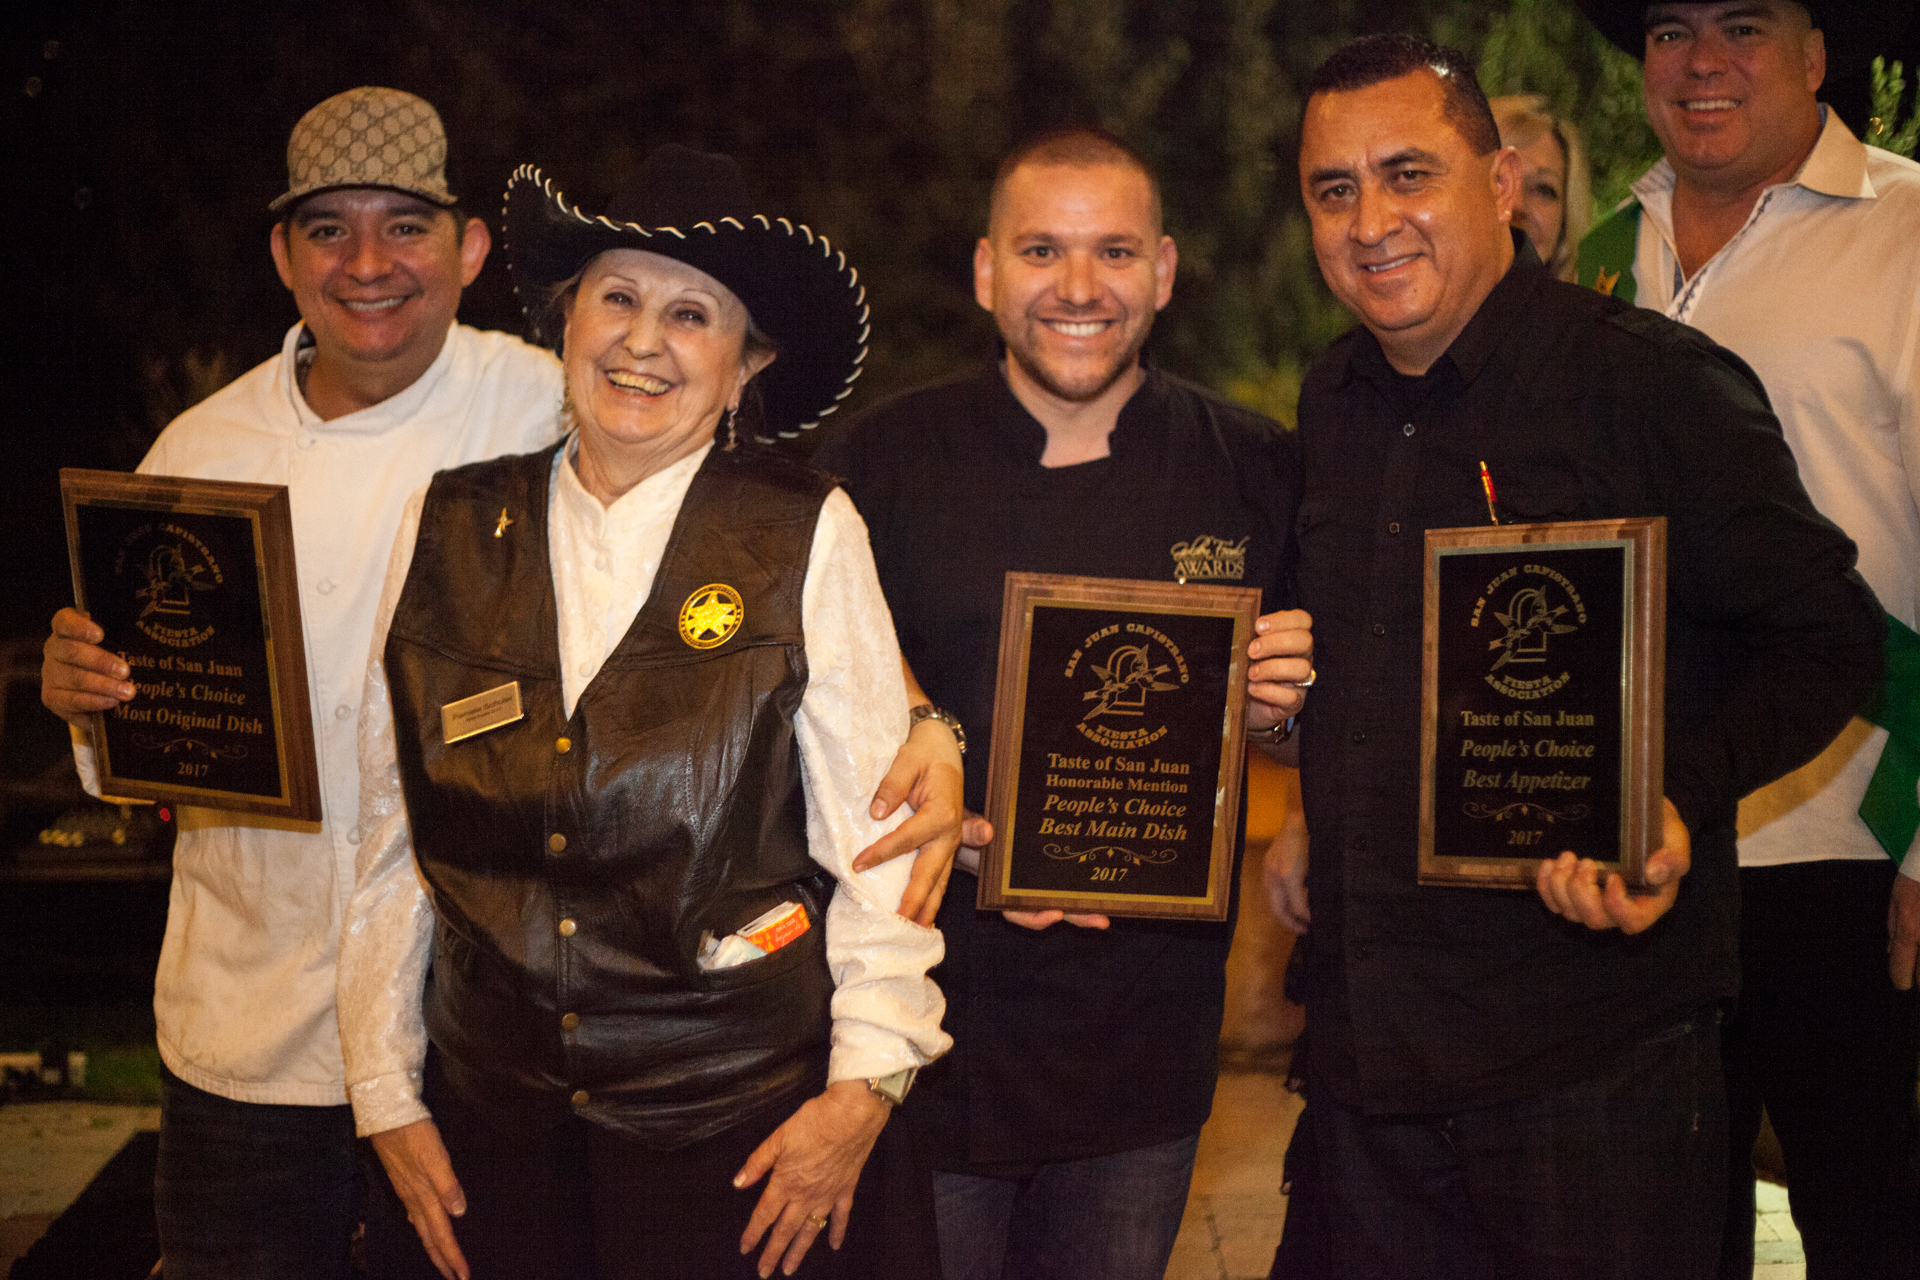 (From left) Chef Manny Velasco, Fiesta board member Pamela Schuler, owner Jesus Galvez, and team member Alfonso Montoya pose with their awards. Photo: Alex Paris